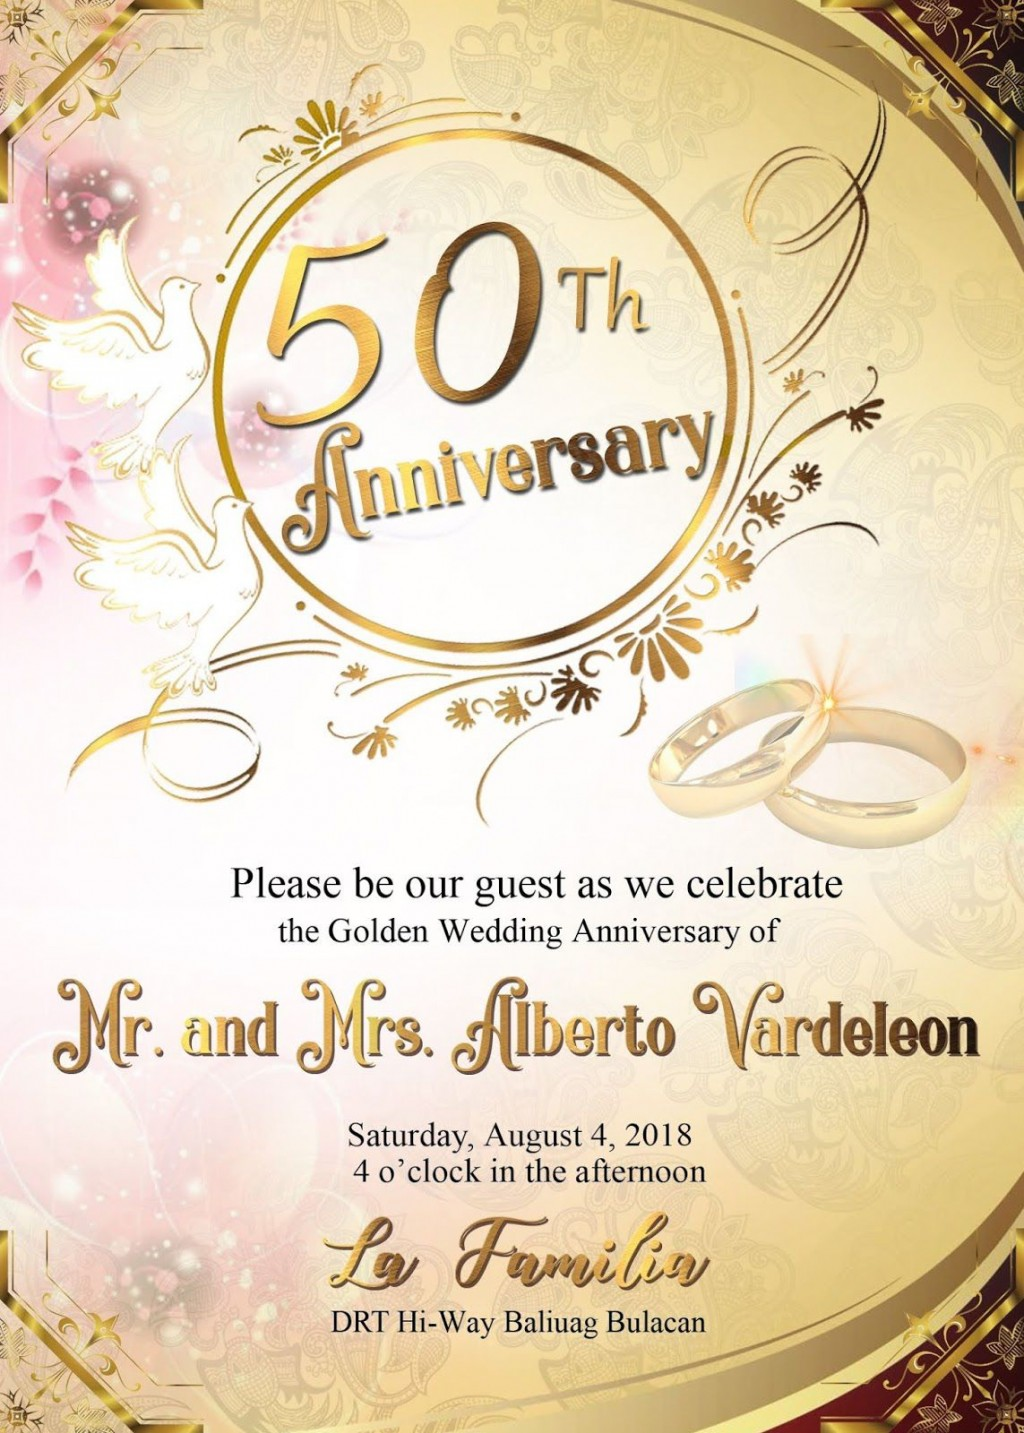 007 Impressive 50th Wedding Anniversary Invitation Sample High Resolution  Samples Free Party Template Card IdeaLarge